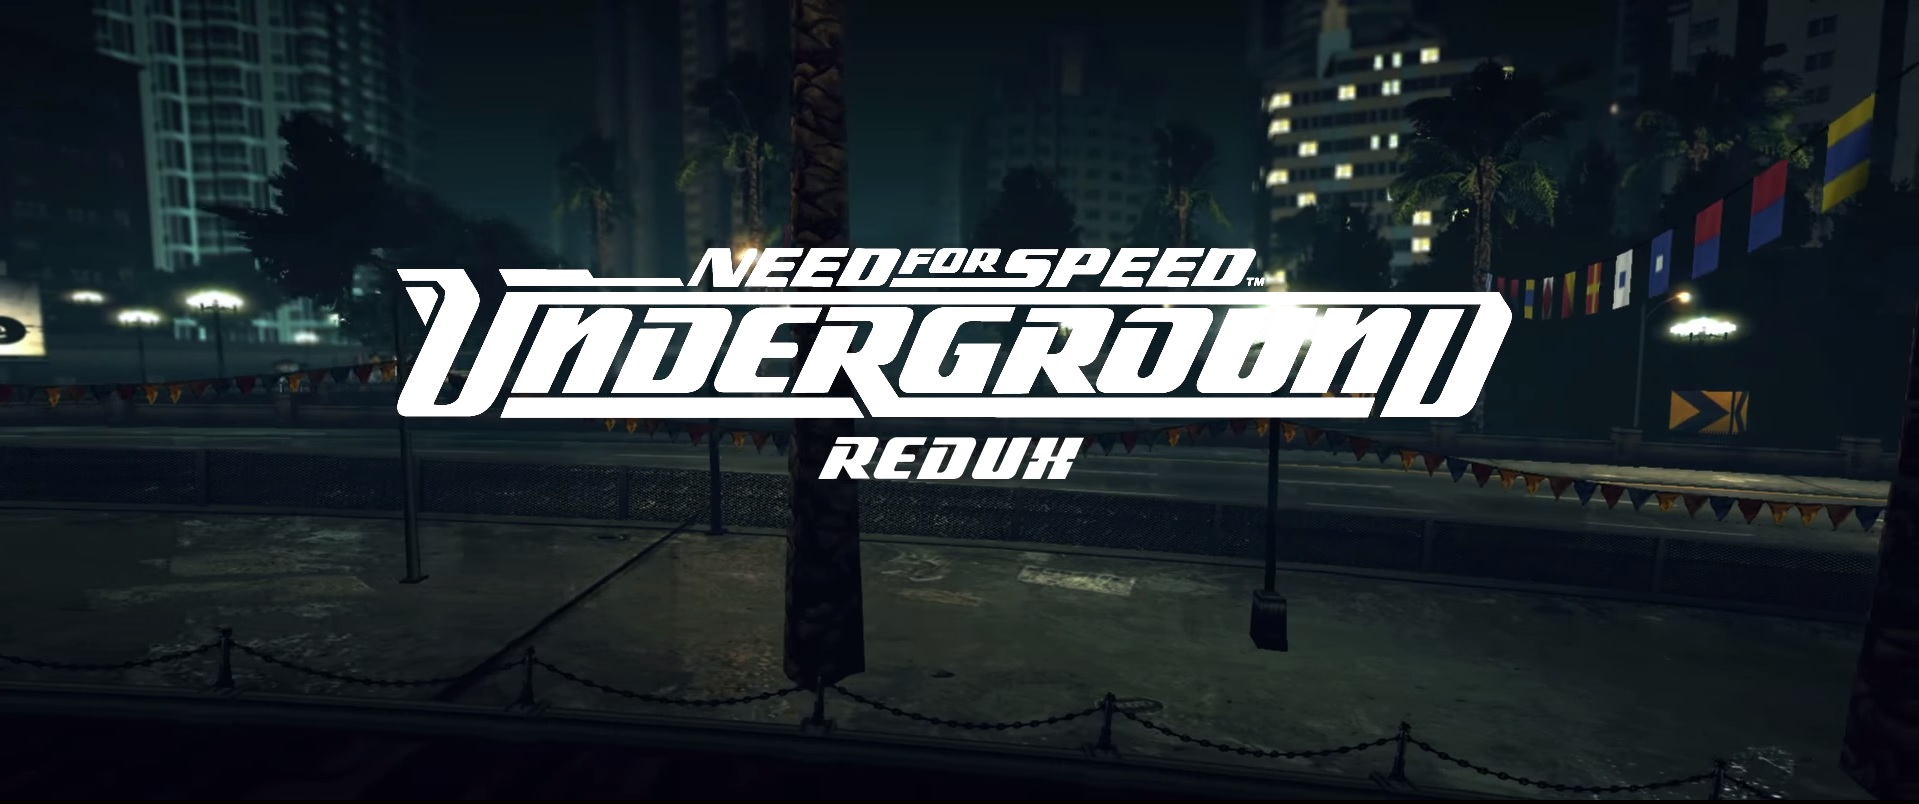 Need for speed Underground (2003) - Redux 2017 [Graphics mod v1.1.6 RUS]